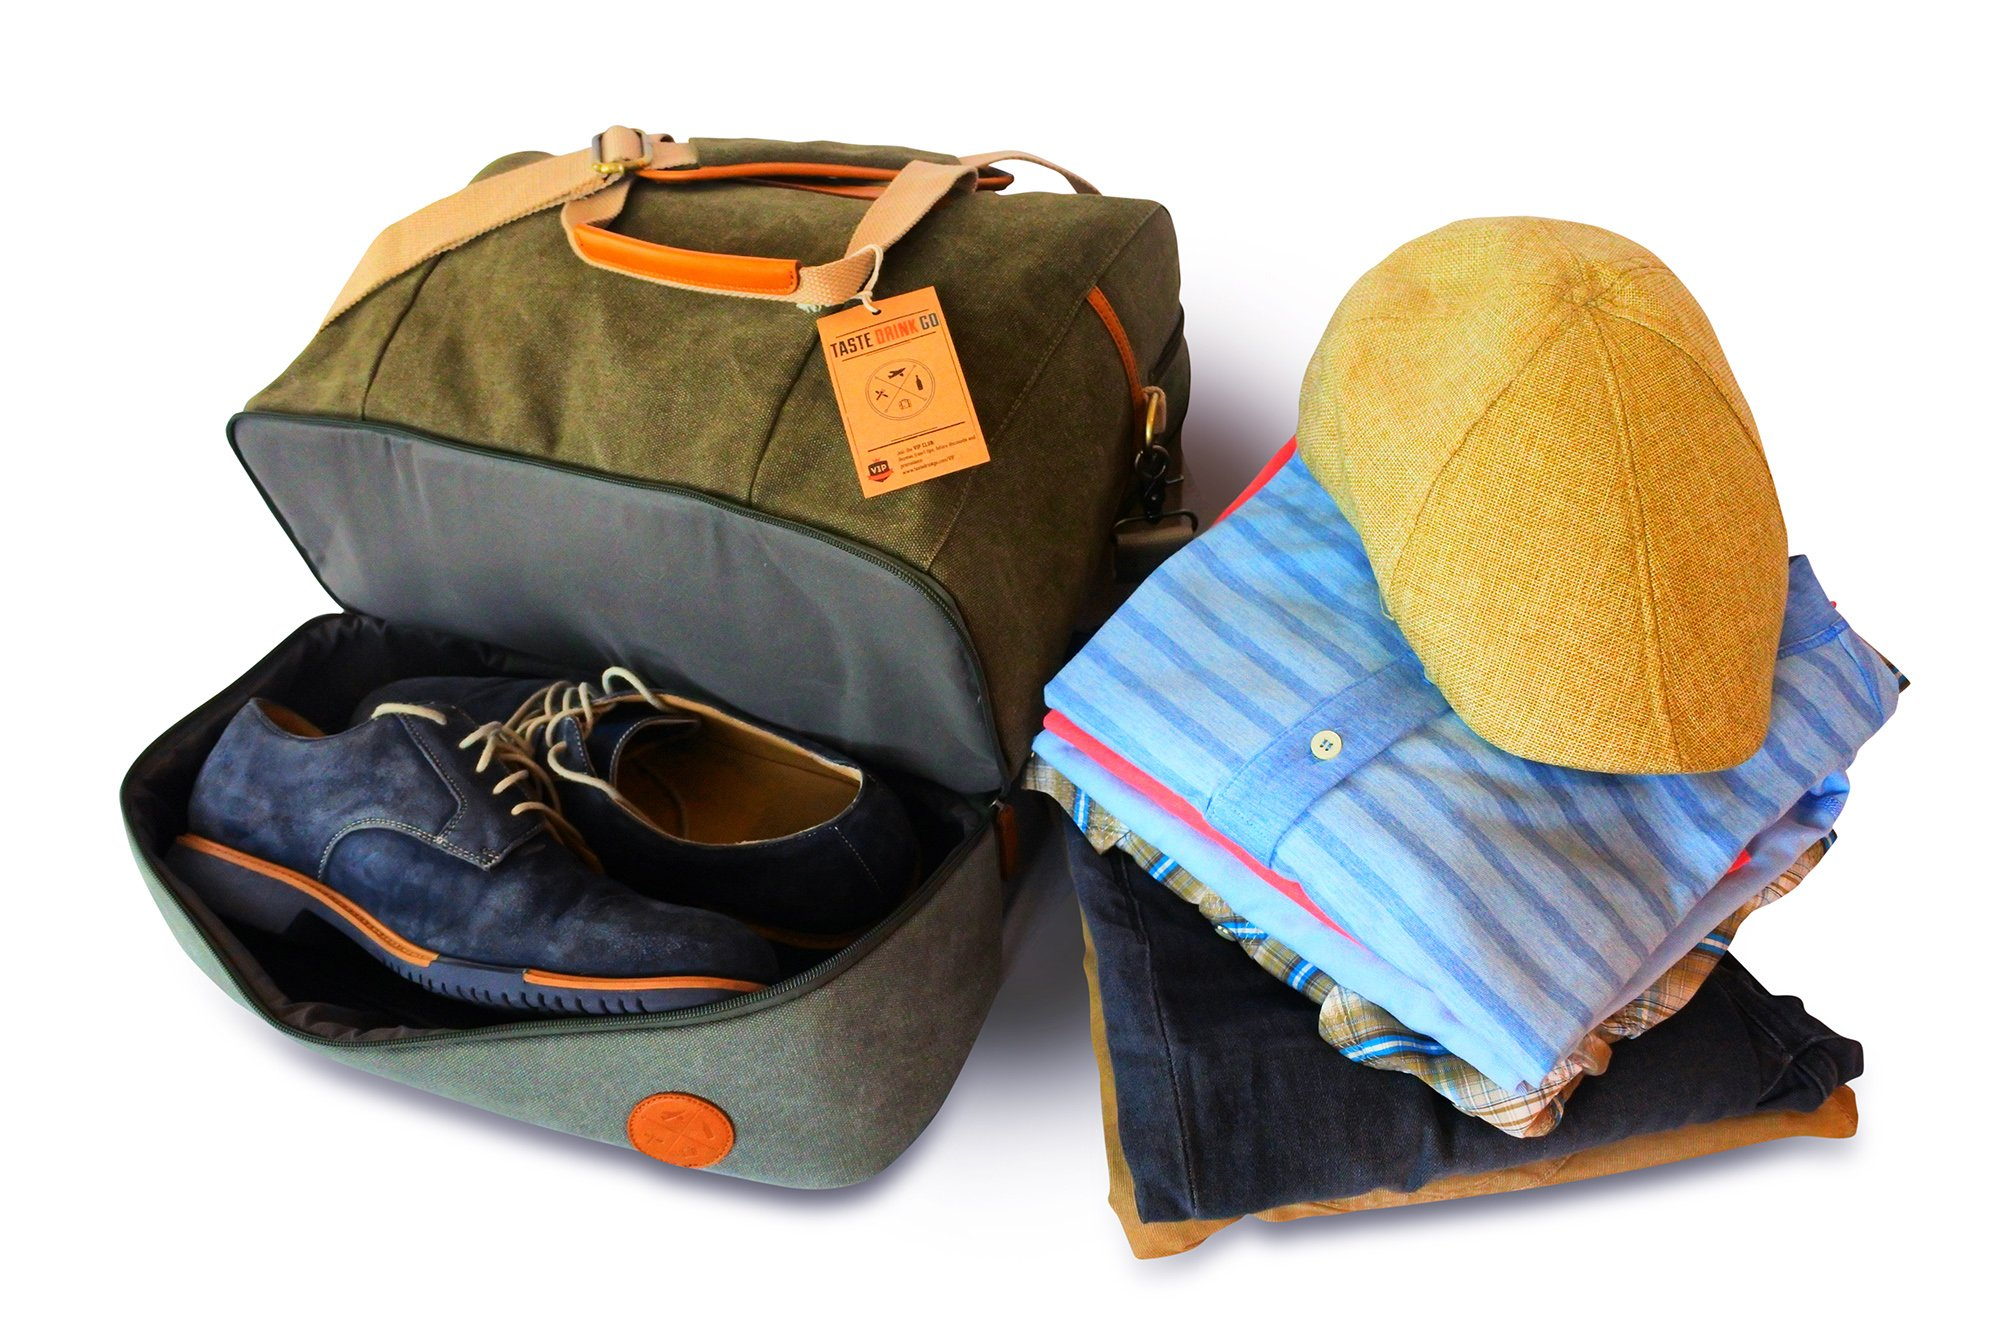 4 Piece Weekend Travel Bag Set - Includes: Canvas Tote, Toiletry Kit, Ipad Wristlet and Weekender Shoulder Bag. Weekend Travel made simple by TASTE DRINK GO. Makes a great Gift! by Taste Drink Go (Image #2)